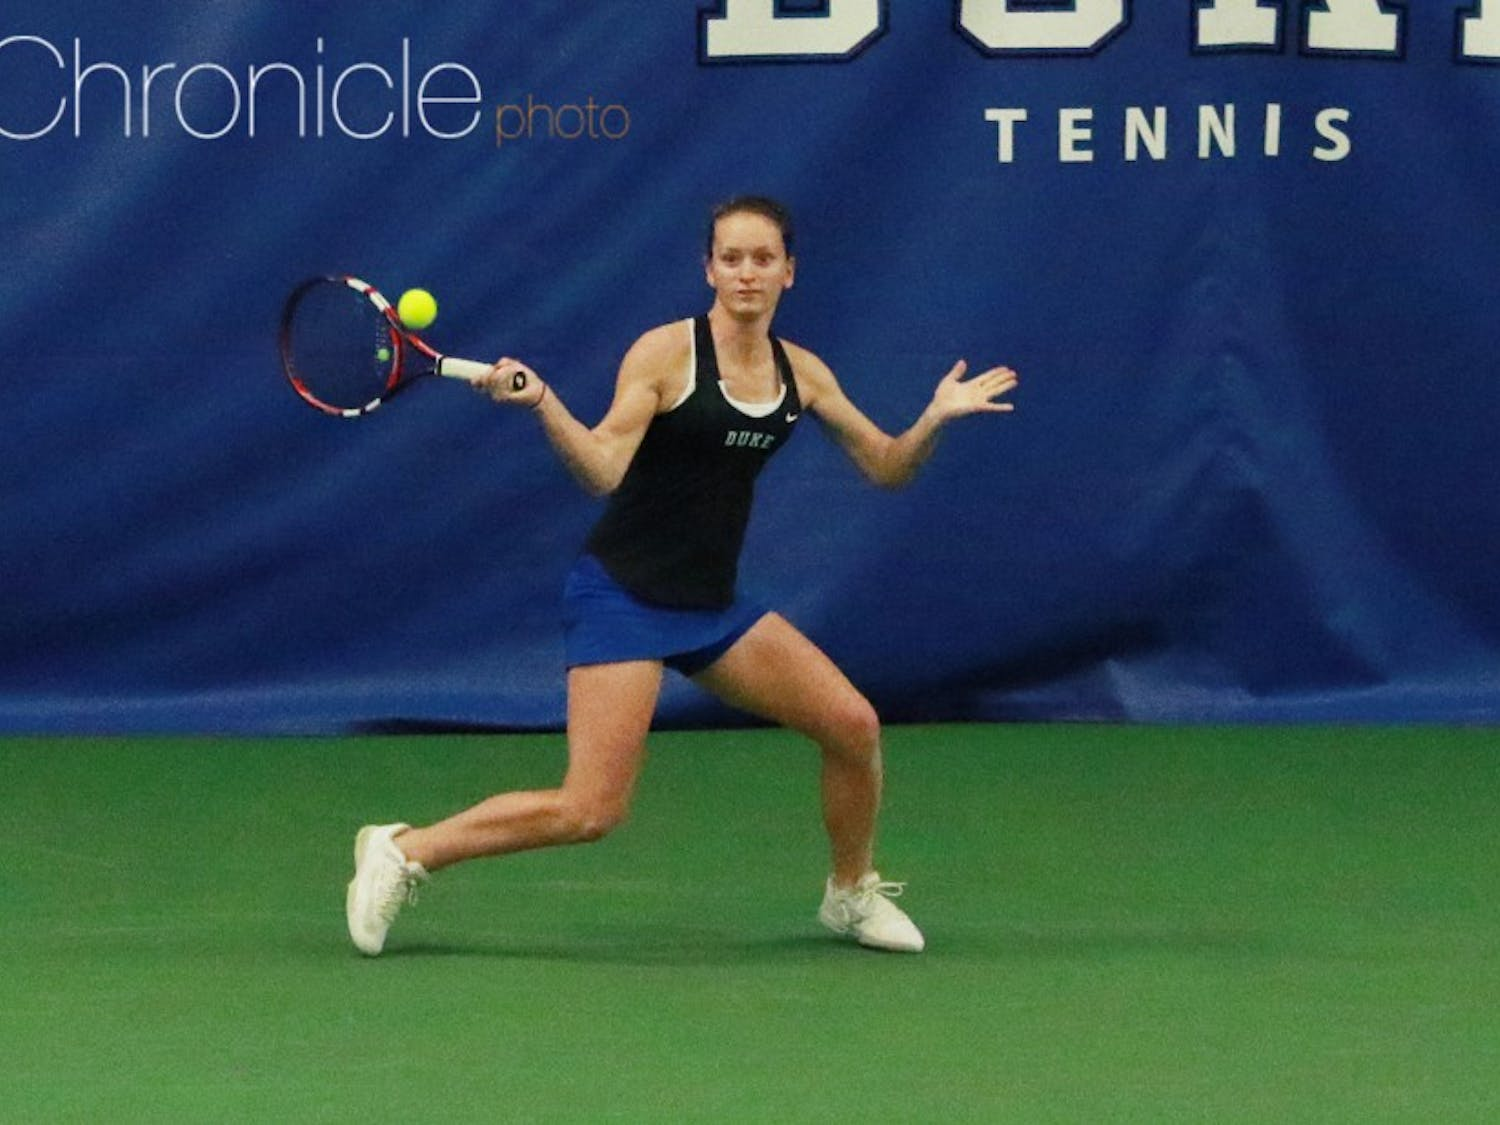 The Blue Devils have won five straight matchups, including three in the ACC, by controlling doubles matches early and putting away big leads in singles.